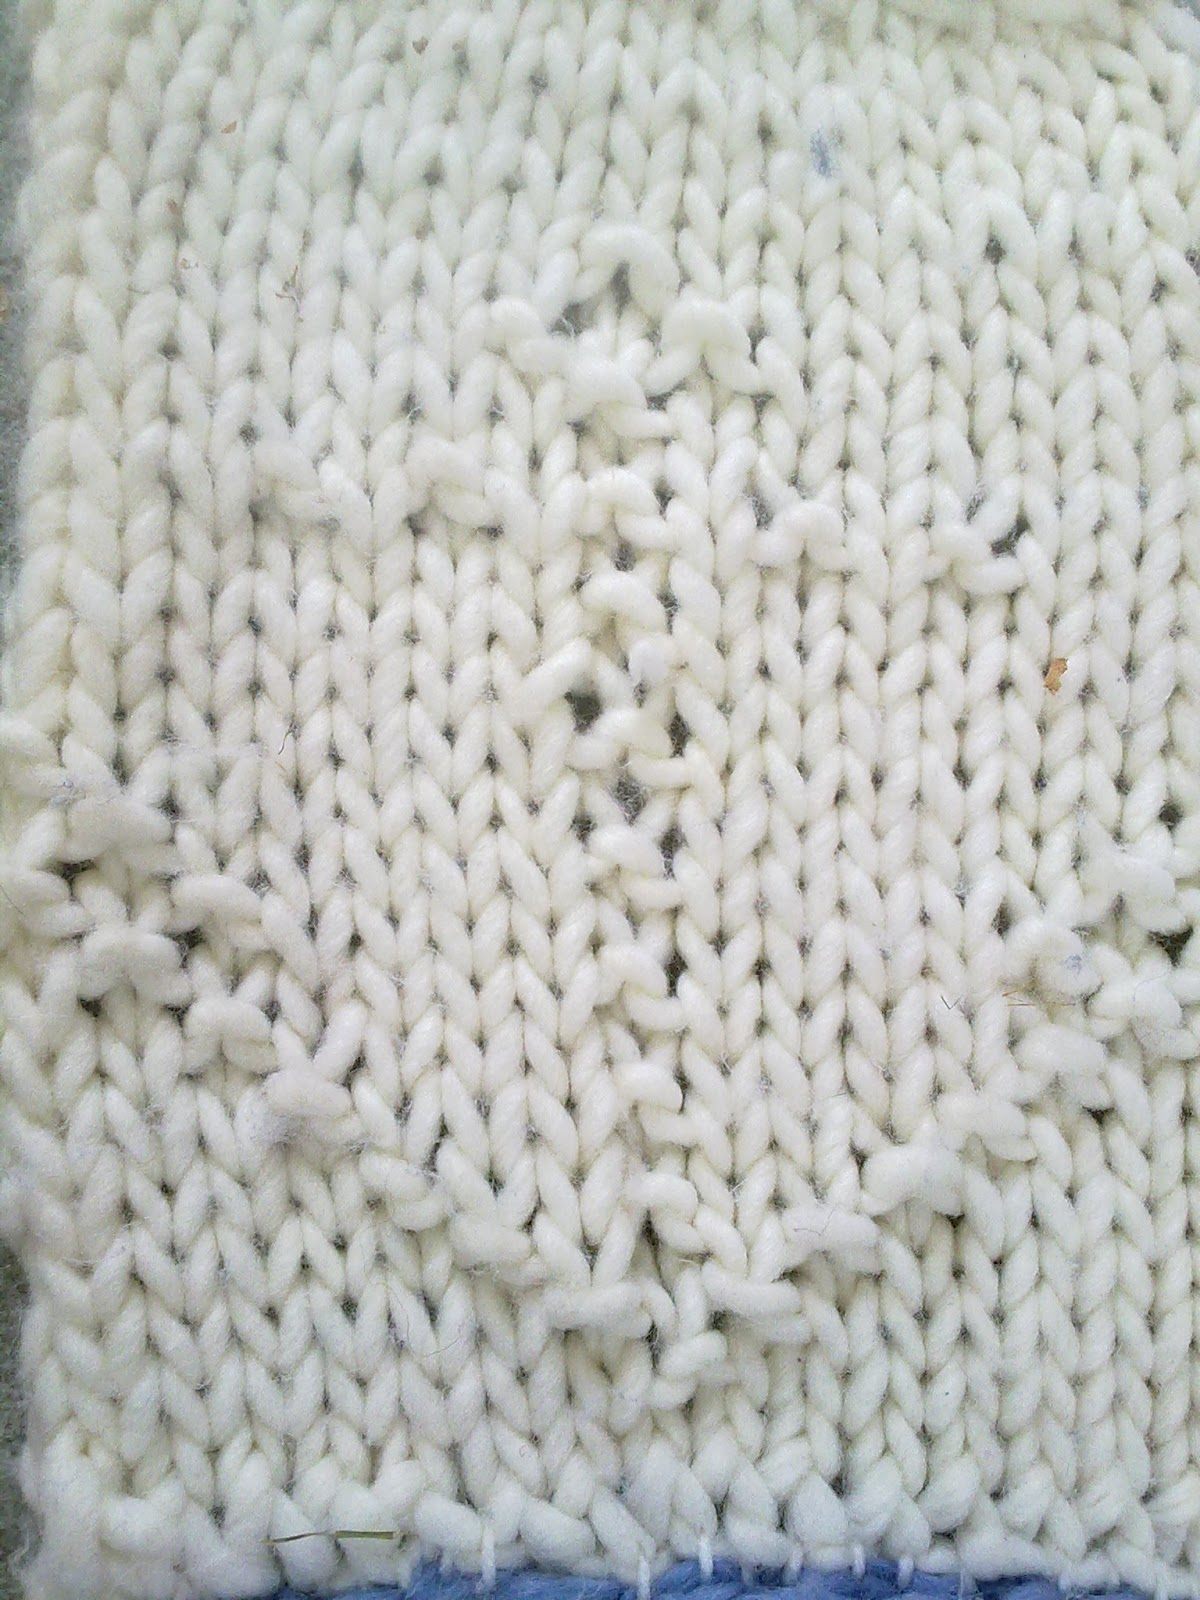 Knit Purl Afghan Patterns : Extemporary knitting: The learn to knit Afghan AKA